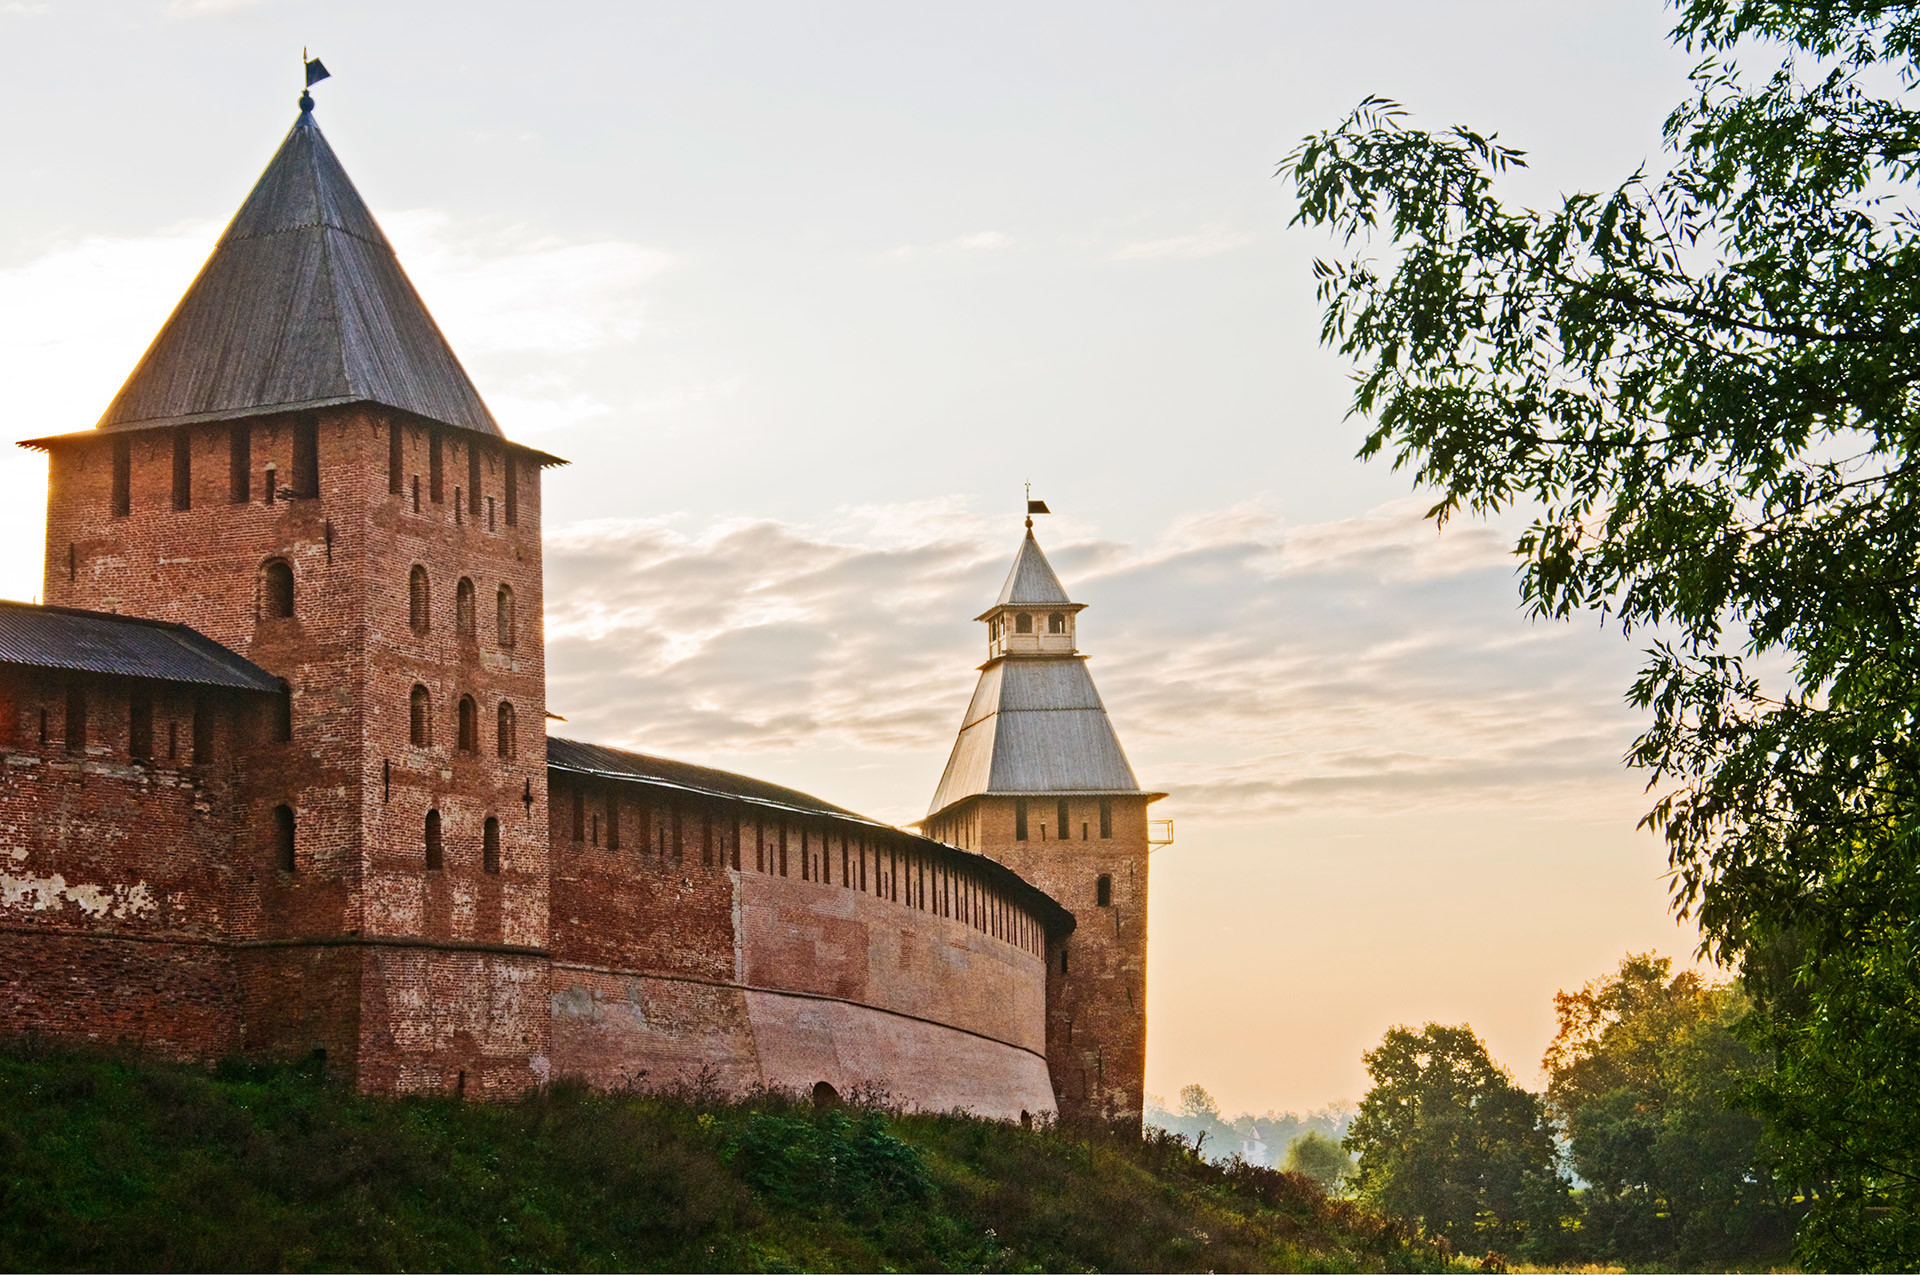 Walls and tower of the Kremlin, which was rebuilt with bricks during the 14th century. Veliky Novgorod, Russia.